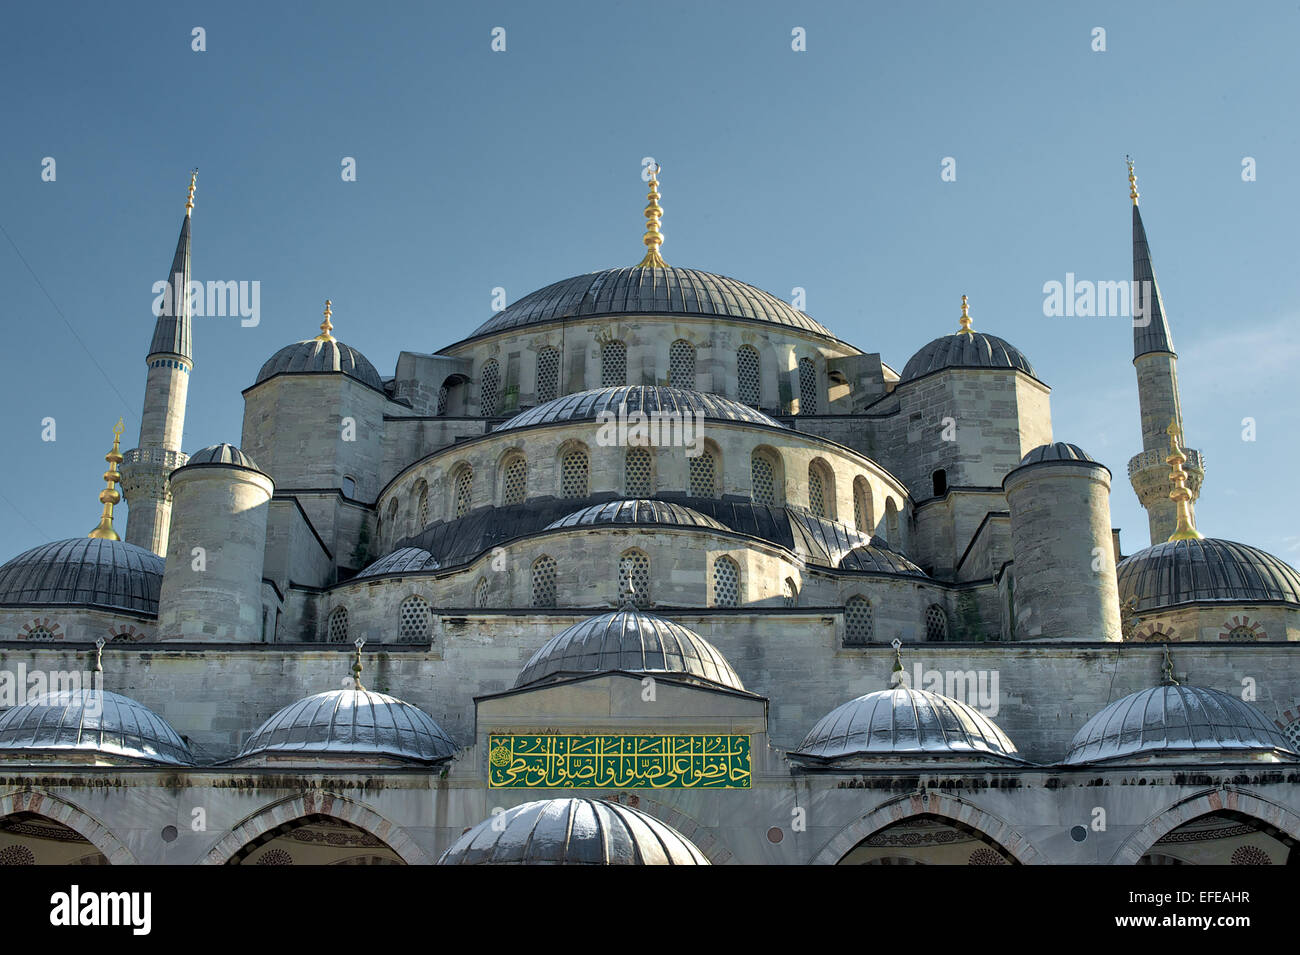 The outside of the Blue Mosque is pictured as part of a photo essay on winter breaks in Istanbul, Turkey. - Stock Image